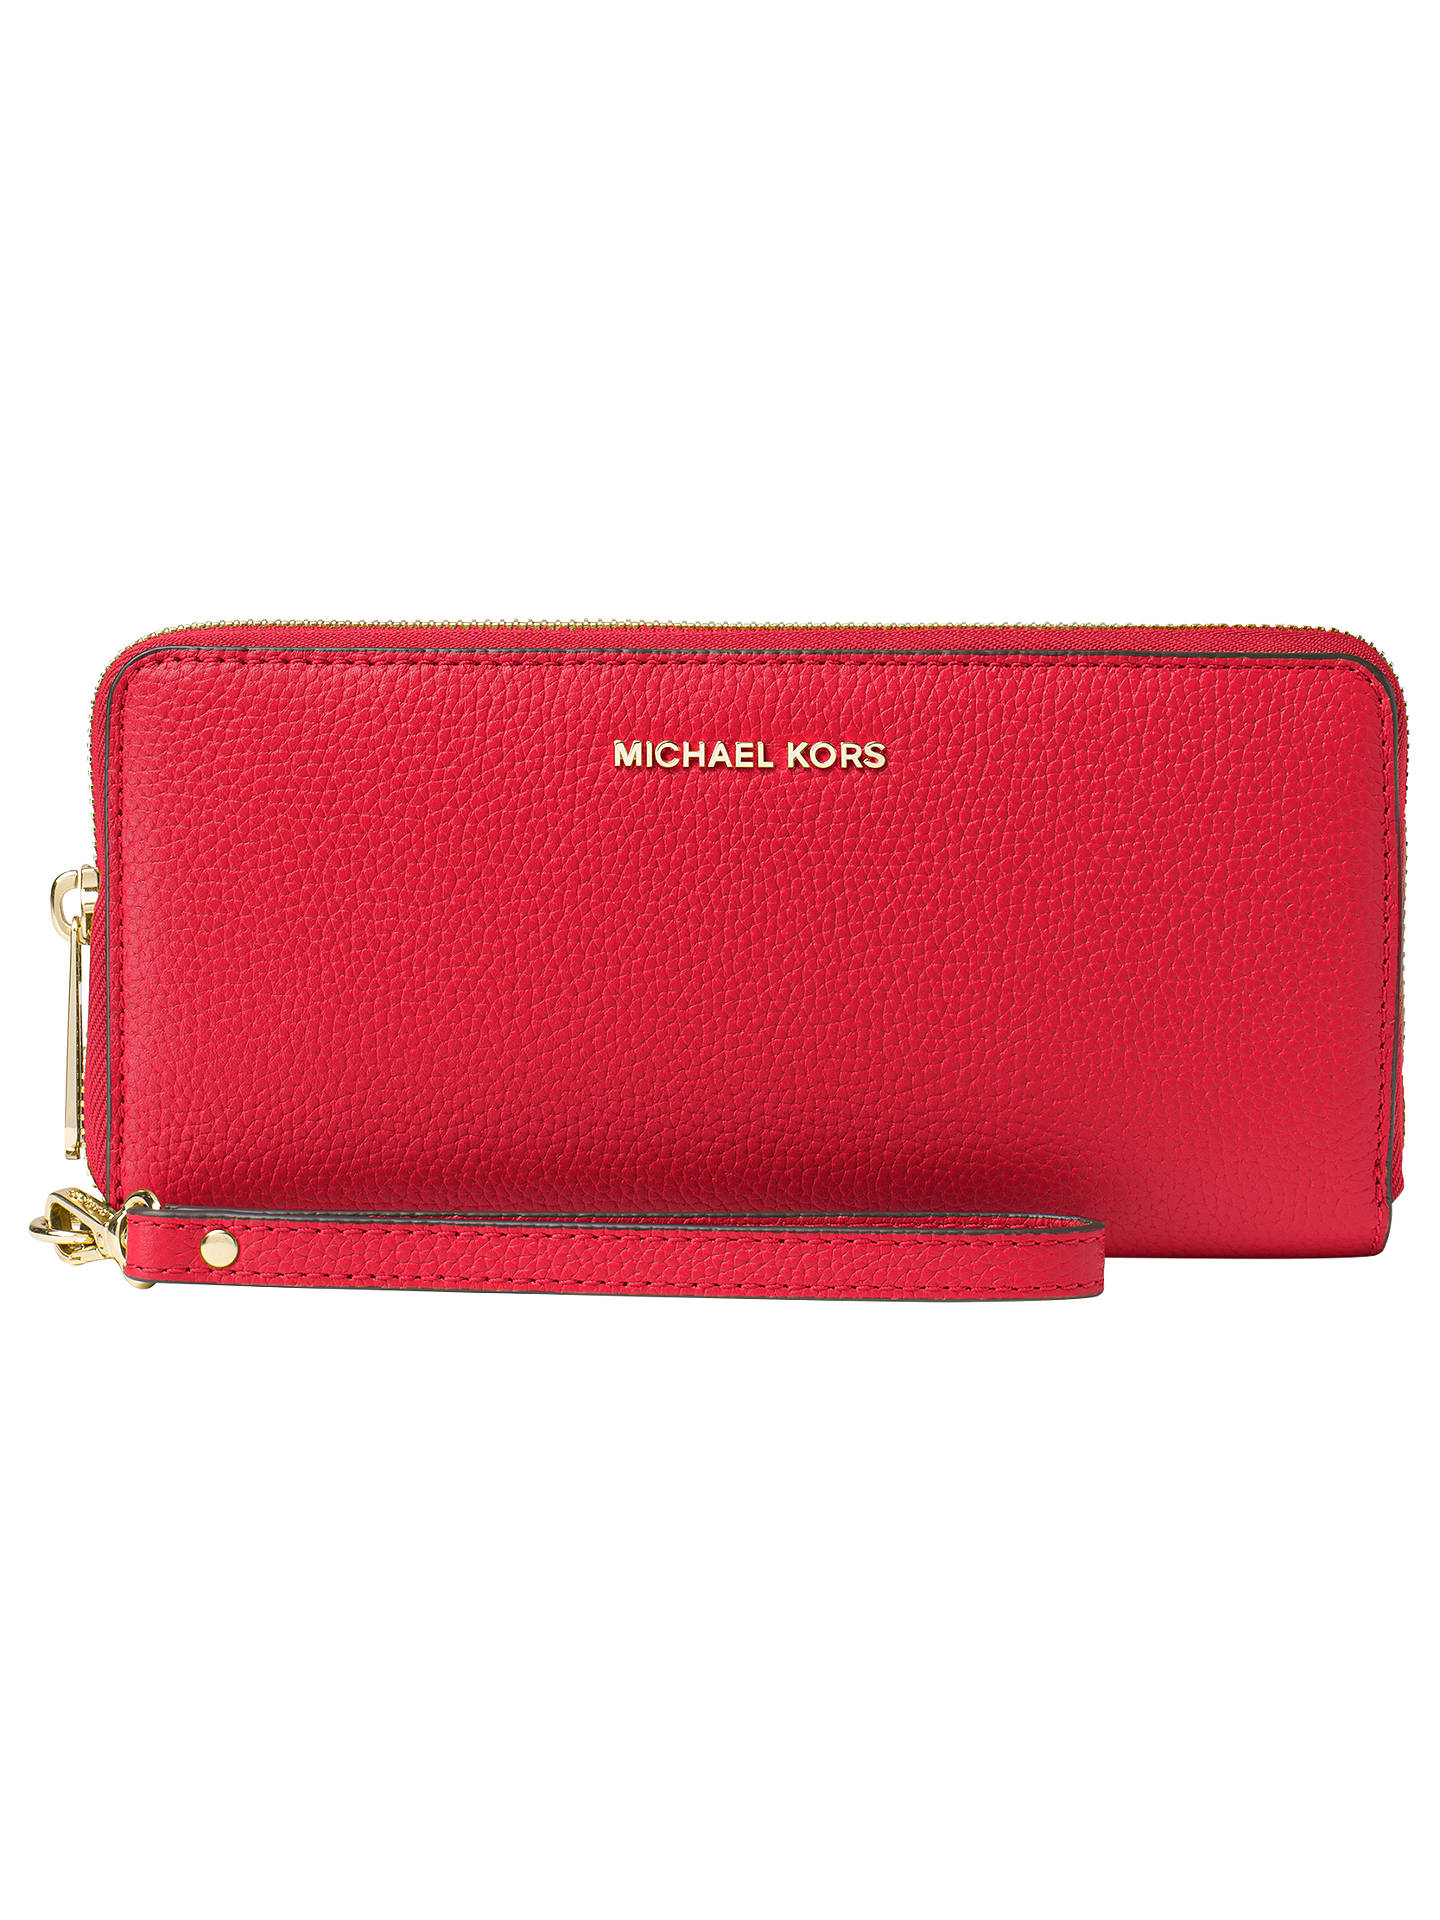 d51883f2b9d2a4 Buy MICHAEL Michael Kors Mercer Leather Continental Multi-Function Purse, Bright  Red Online at ...